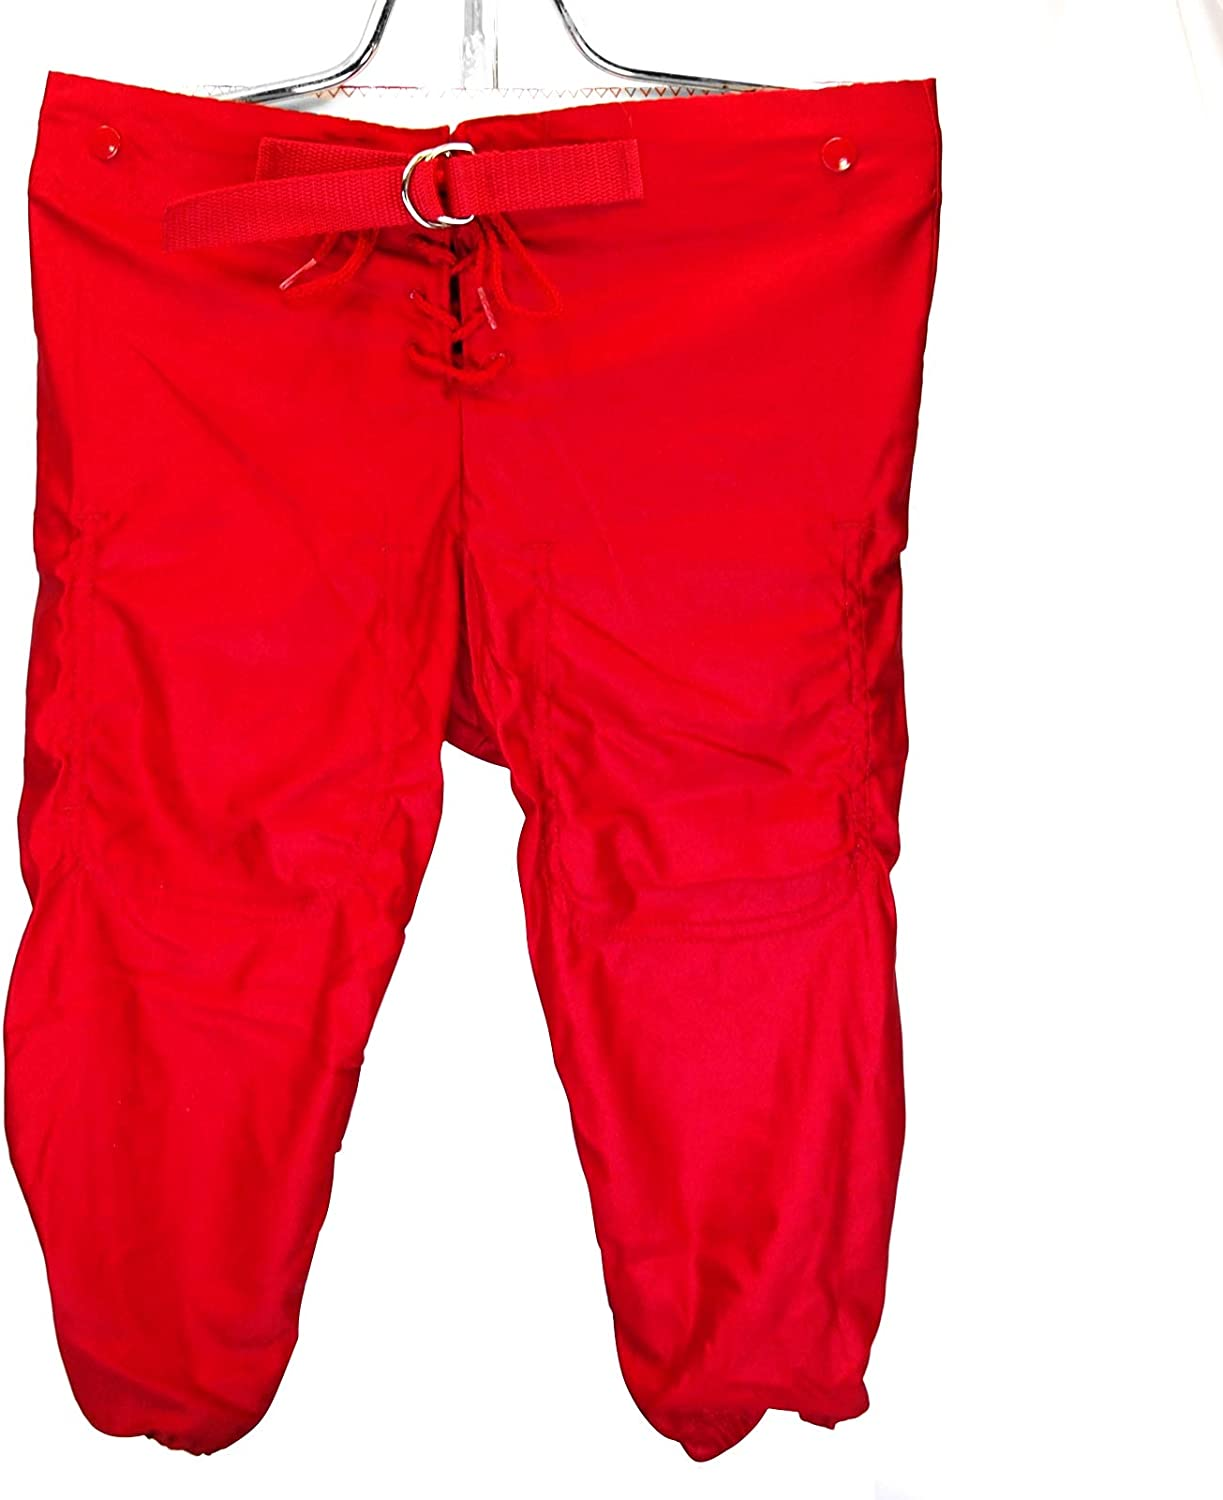 ADAMS Football All items in the store Game Pants Scarlet Limited price with Youth Snaps Large YDGP-81